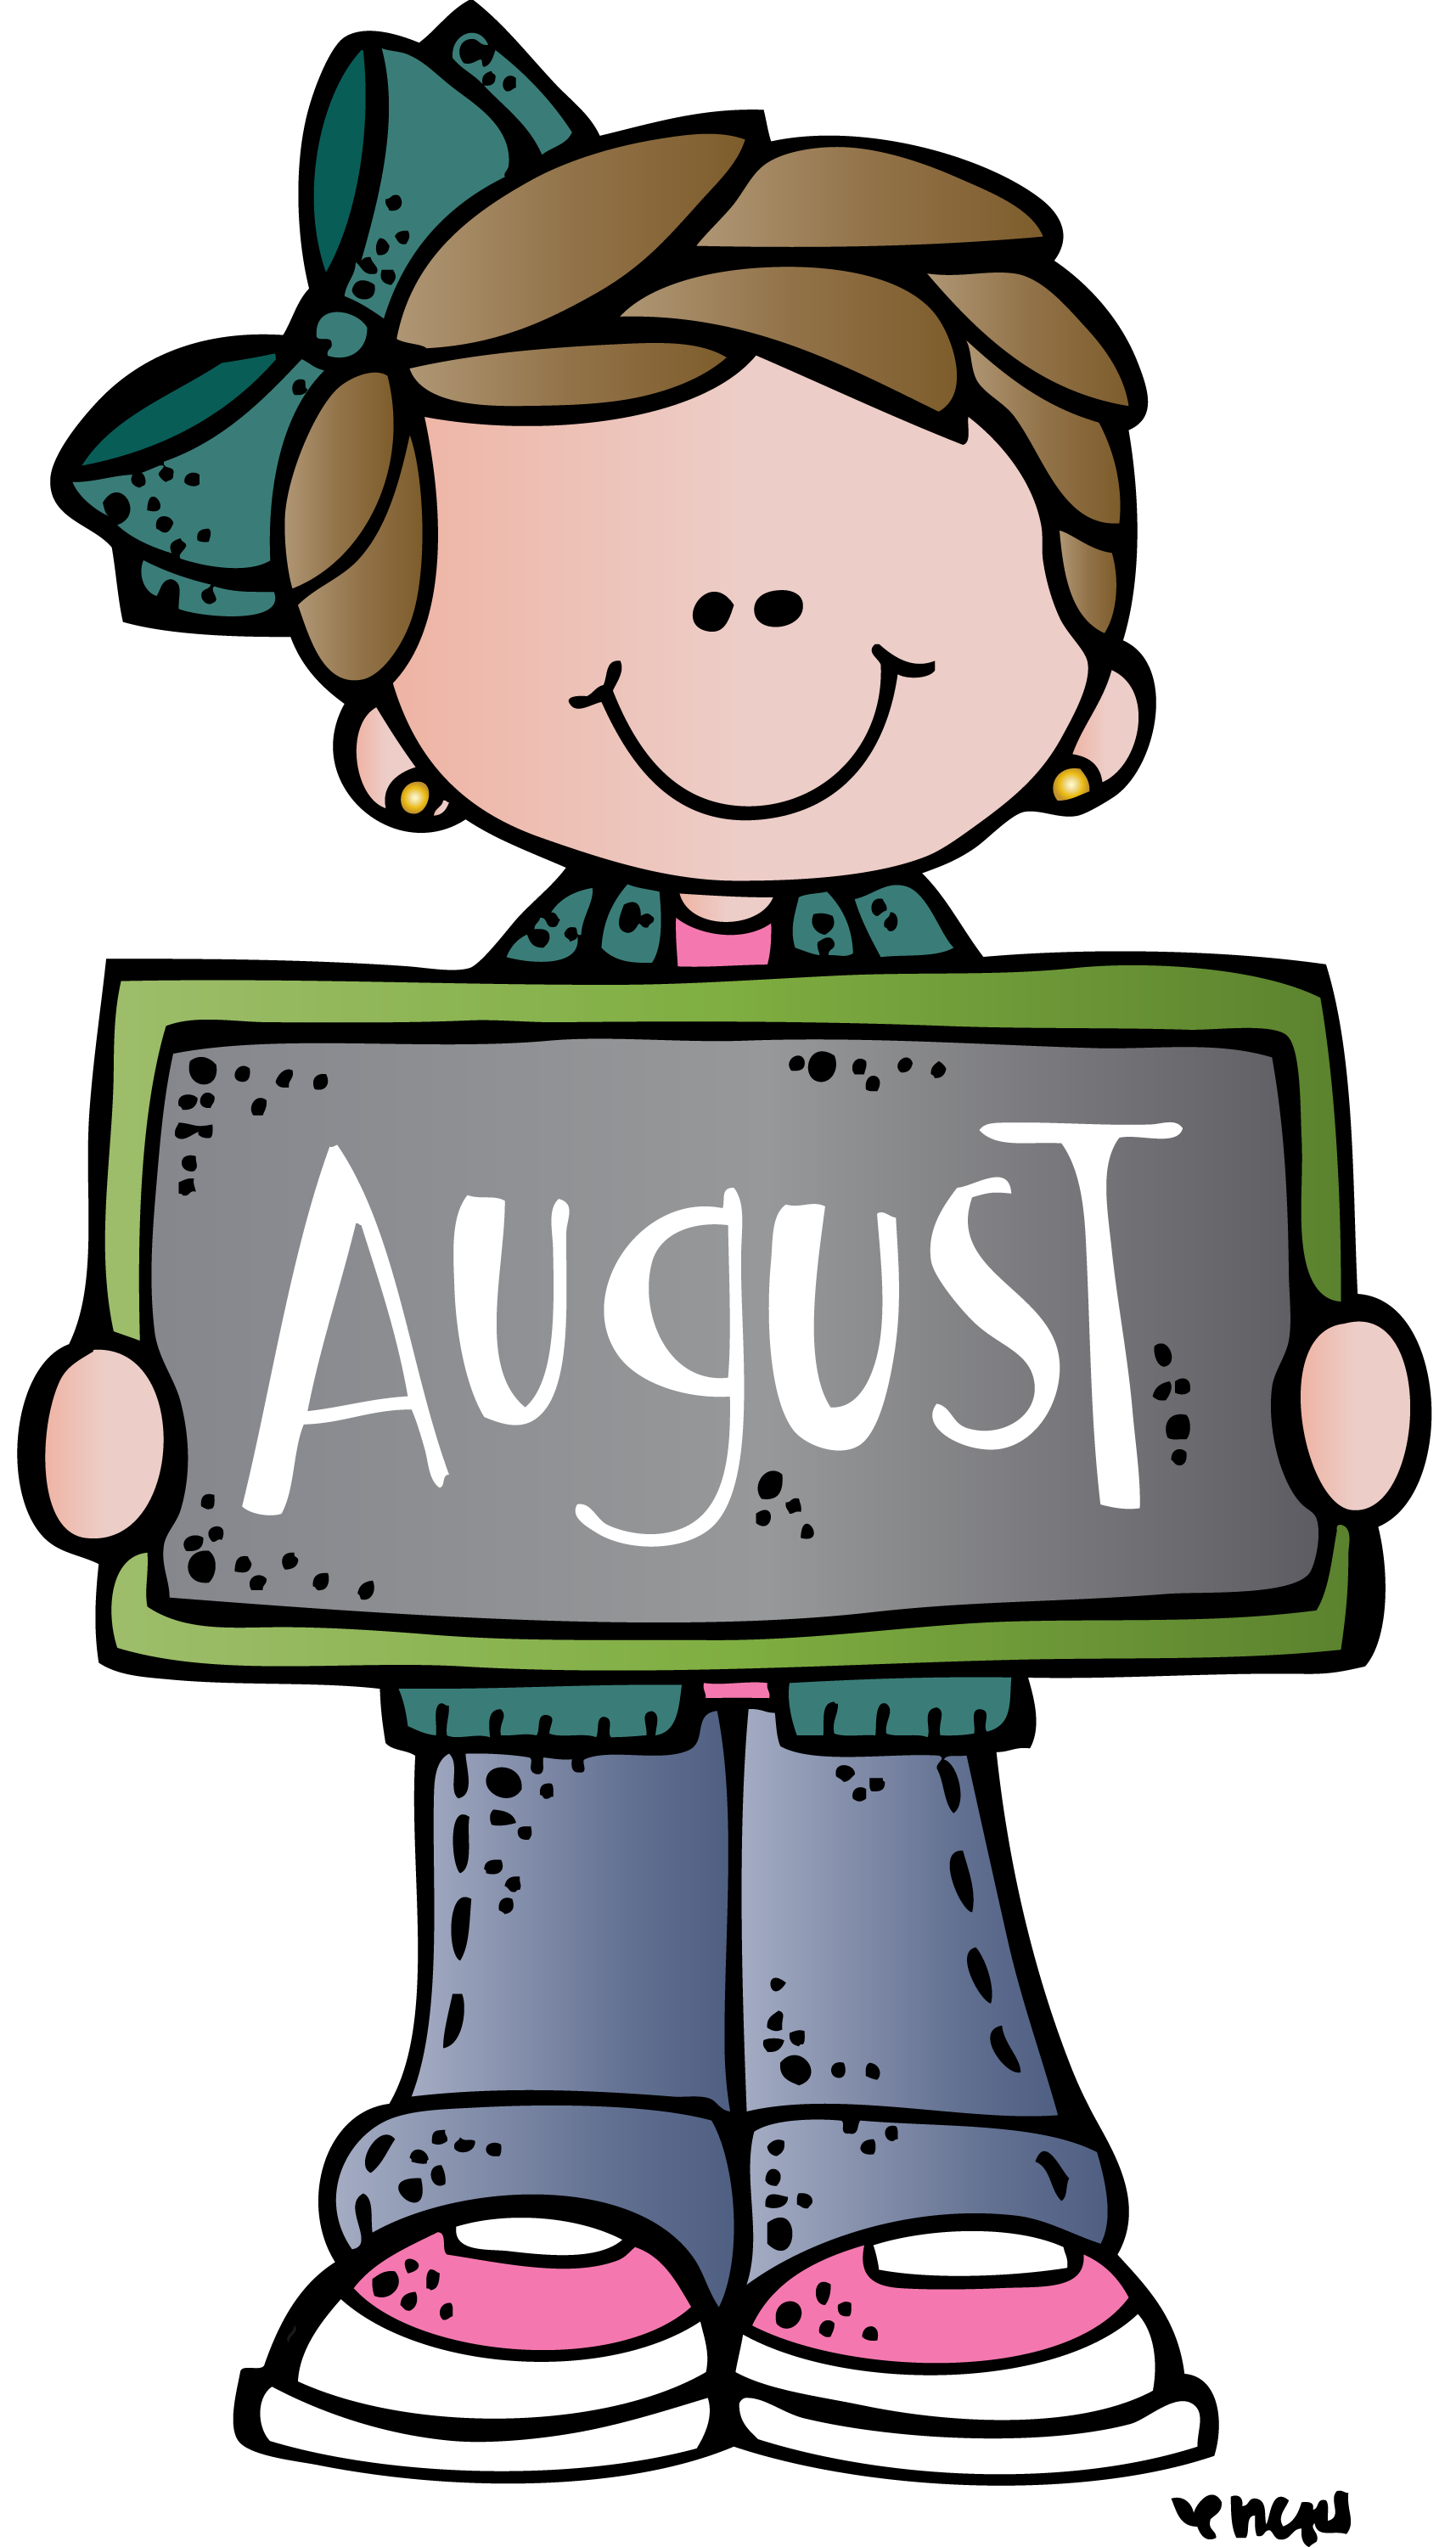 August mel melonheadz pinterest. Focus clipart tension